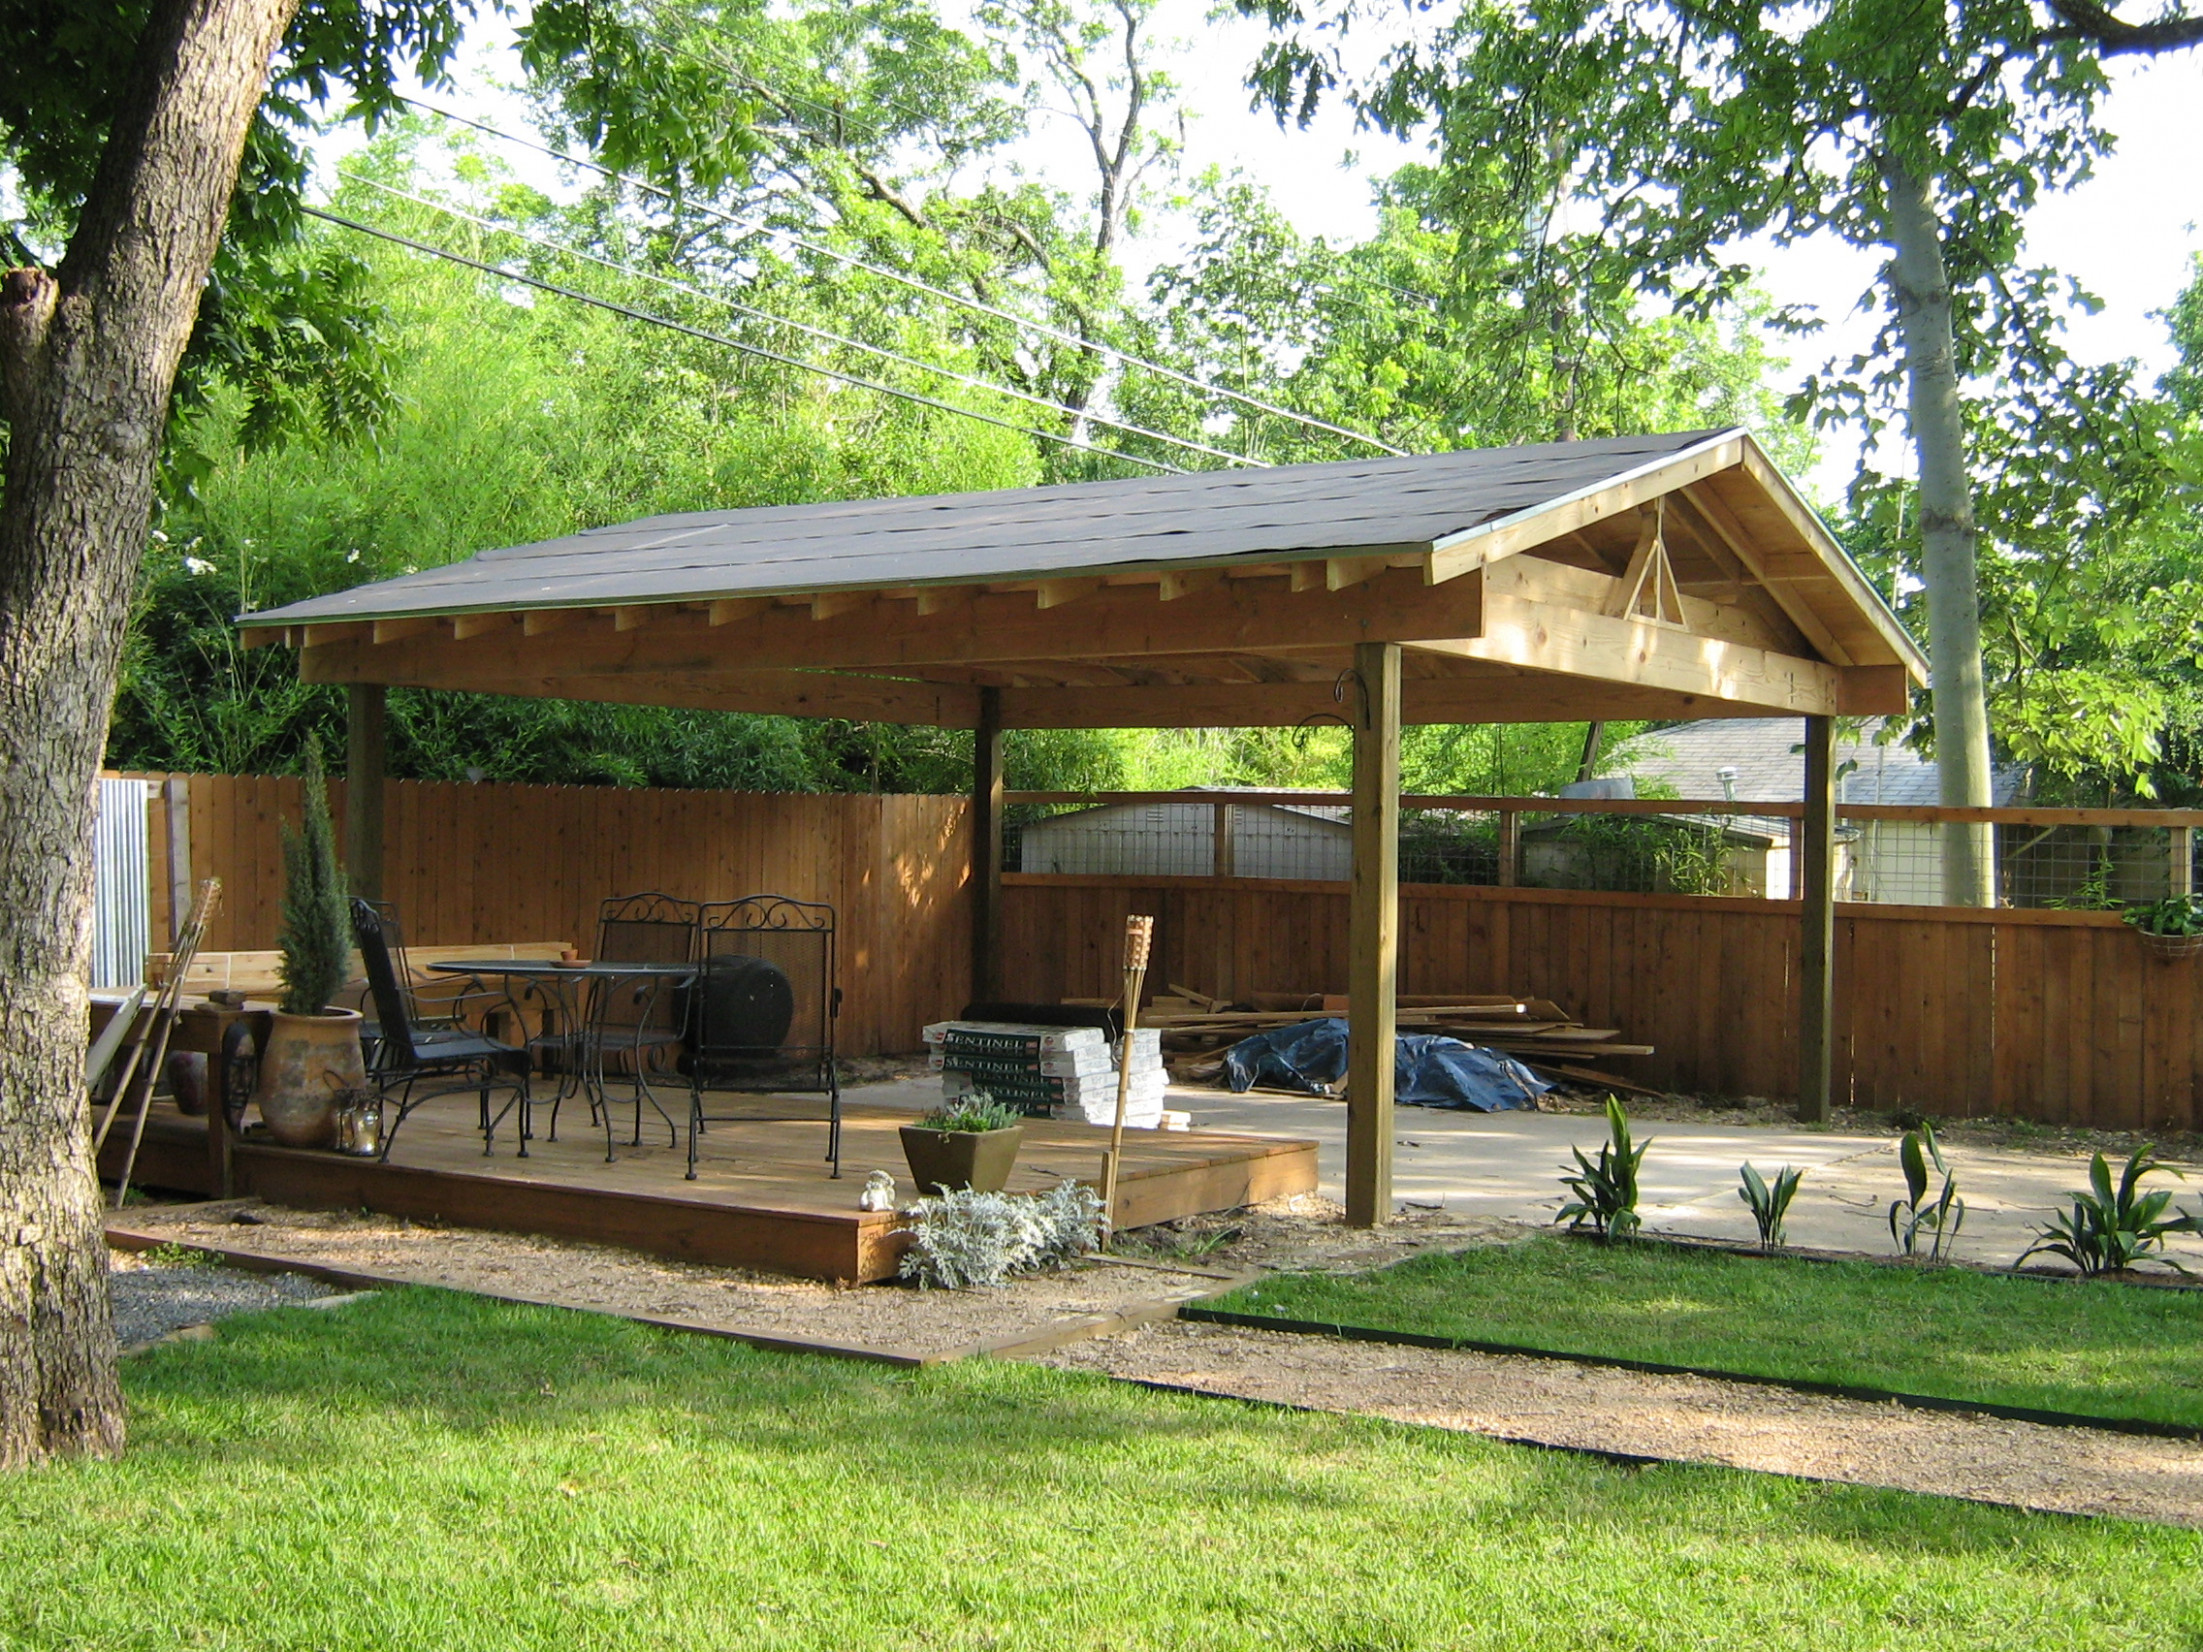 Wood Carports Photos Home Decorating Ideas Ideas For Carports